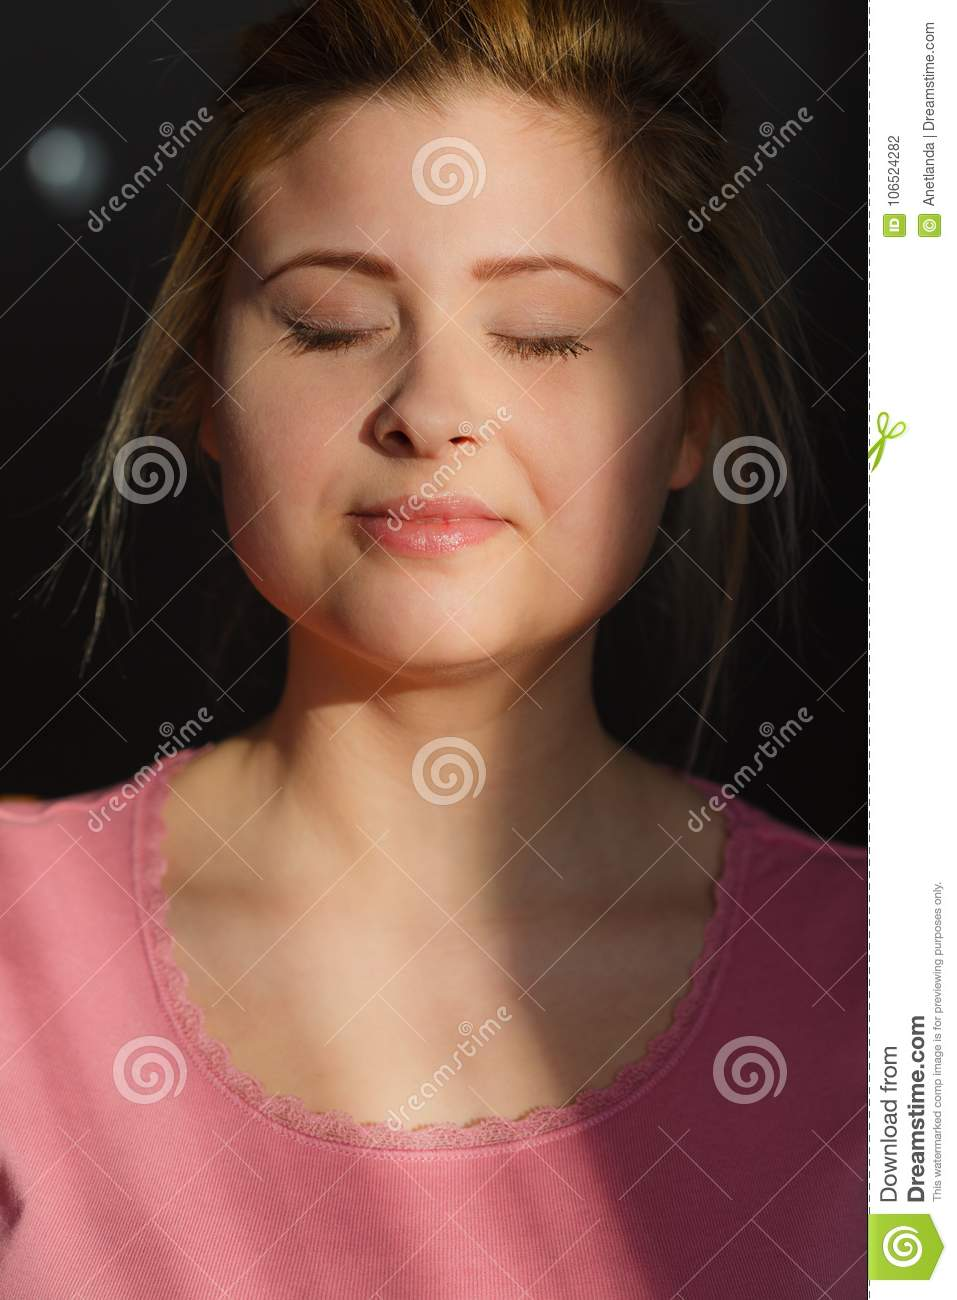 Happy Woman With Closed Eyes With No Makeup Stock Photo Image Of